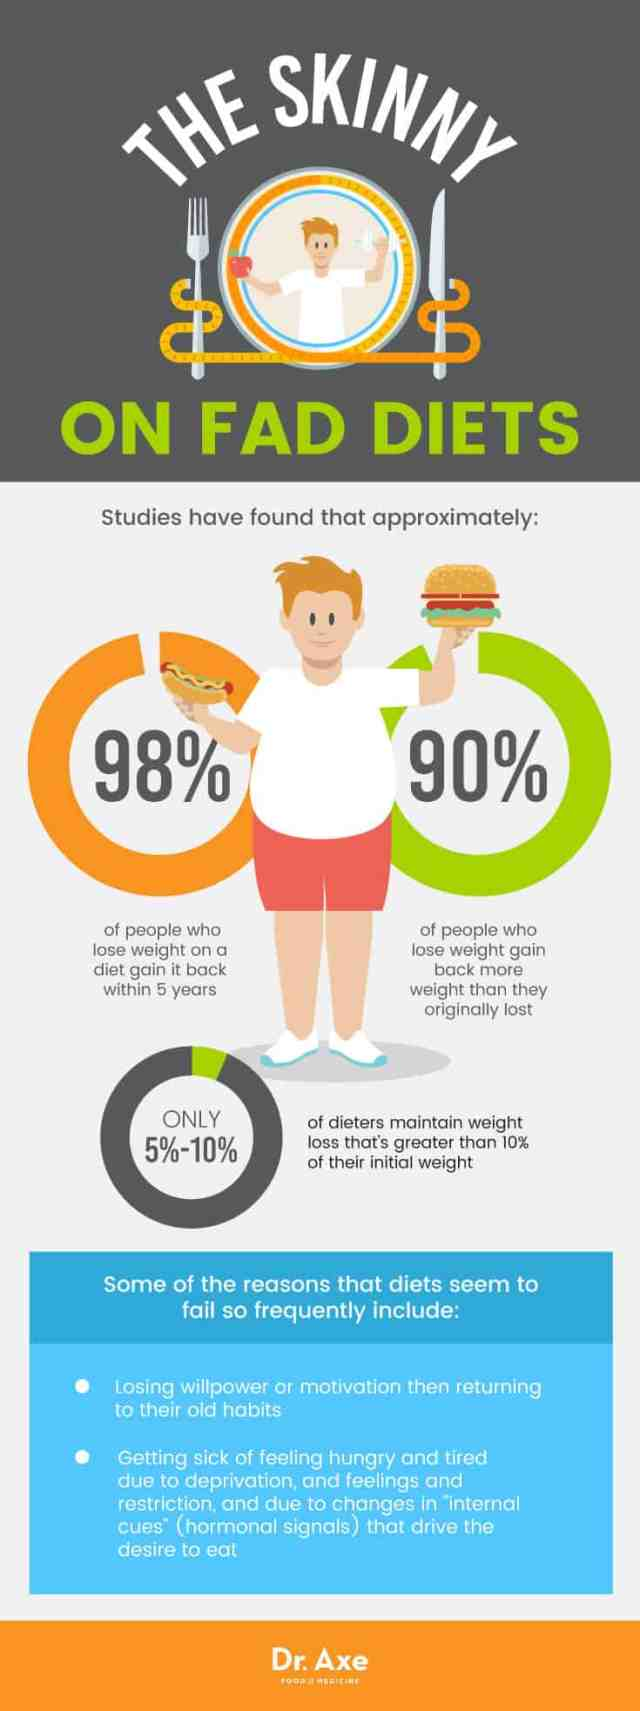 The skinny on fad diets - Dr. Axe